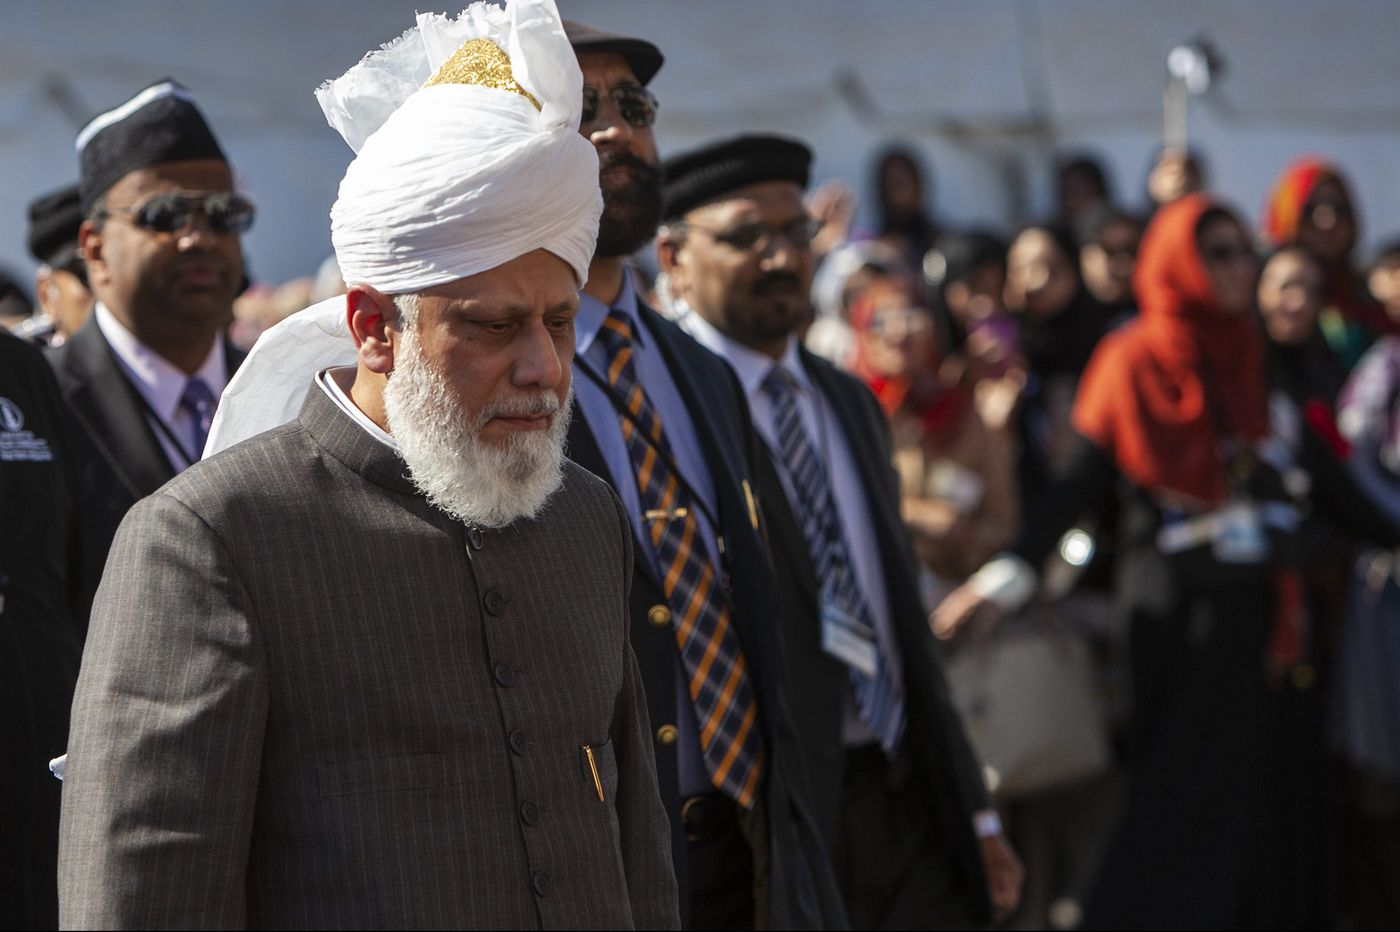 The Ahmadiyya Muslim Community's 'pope' visits to dedicate a mosque in North Philadelphia